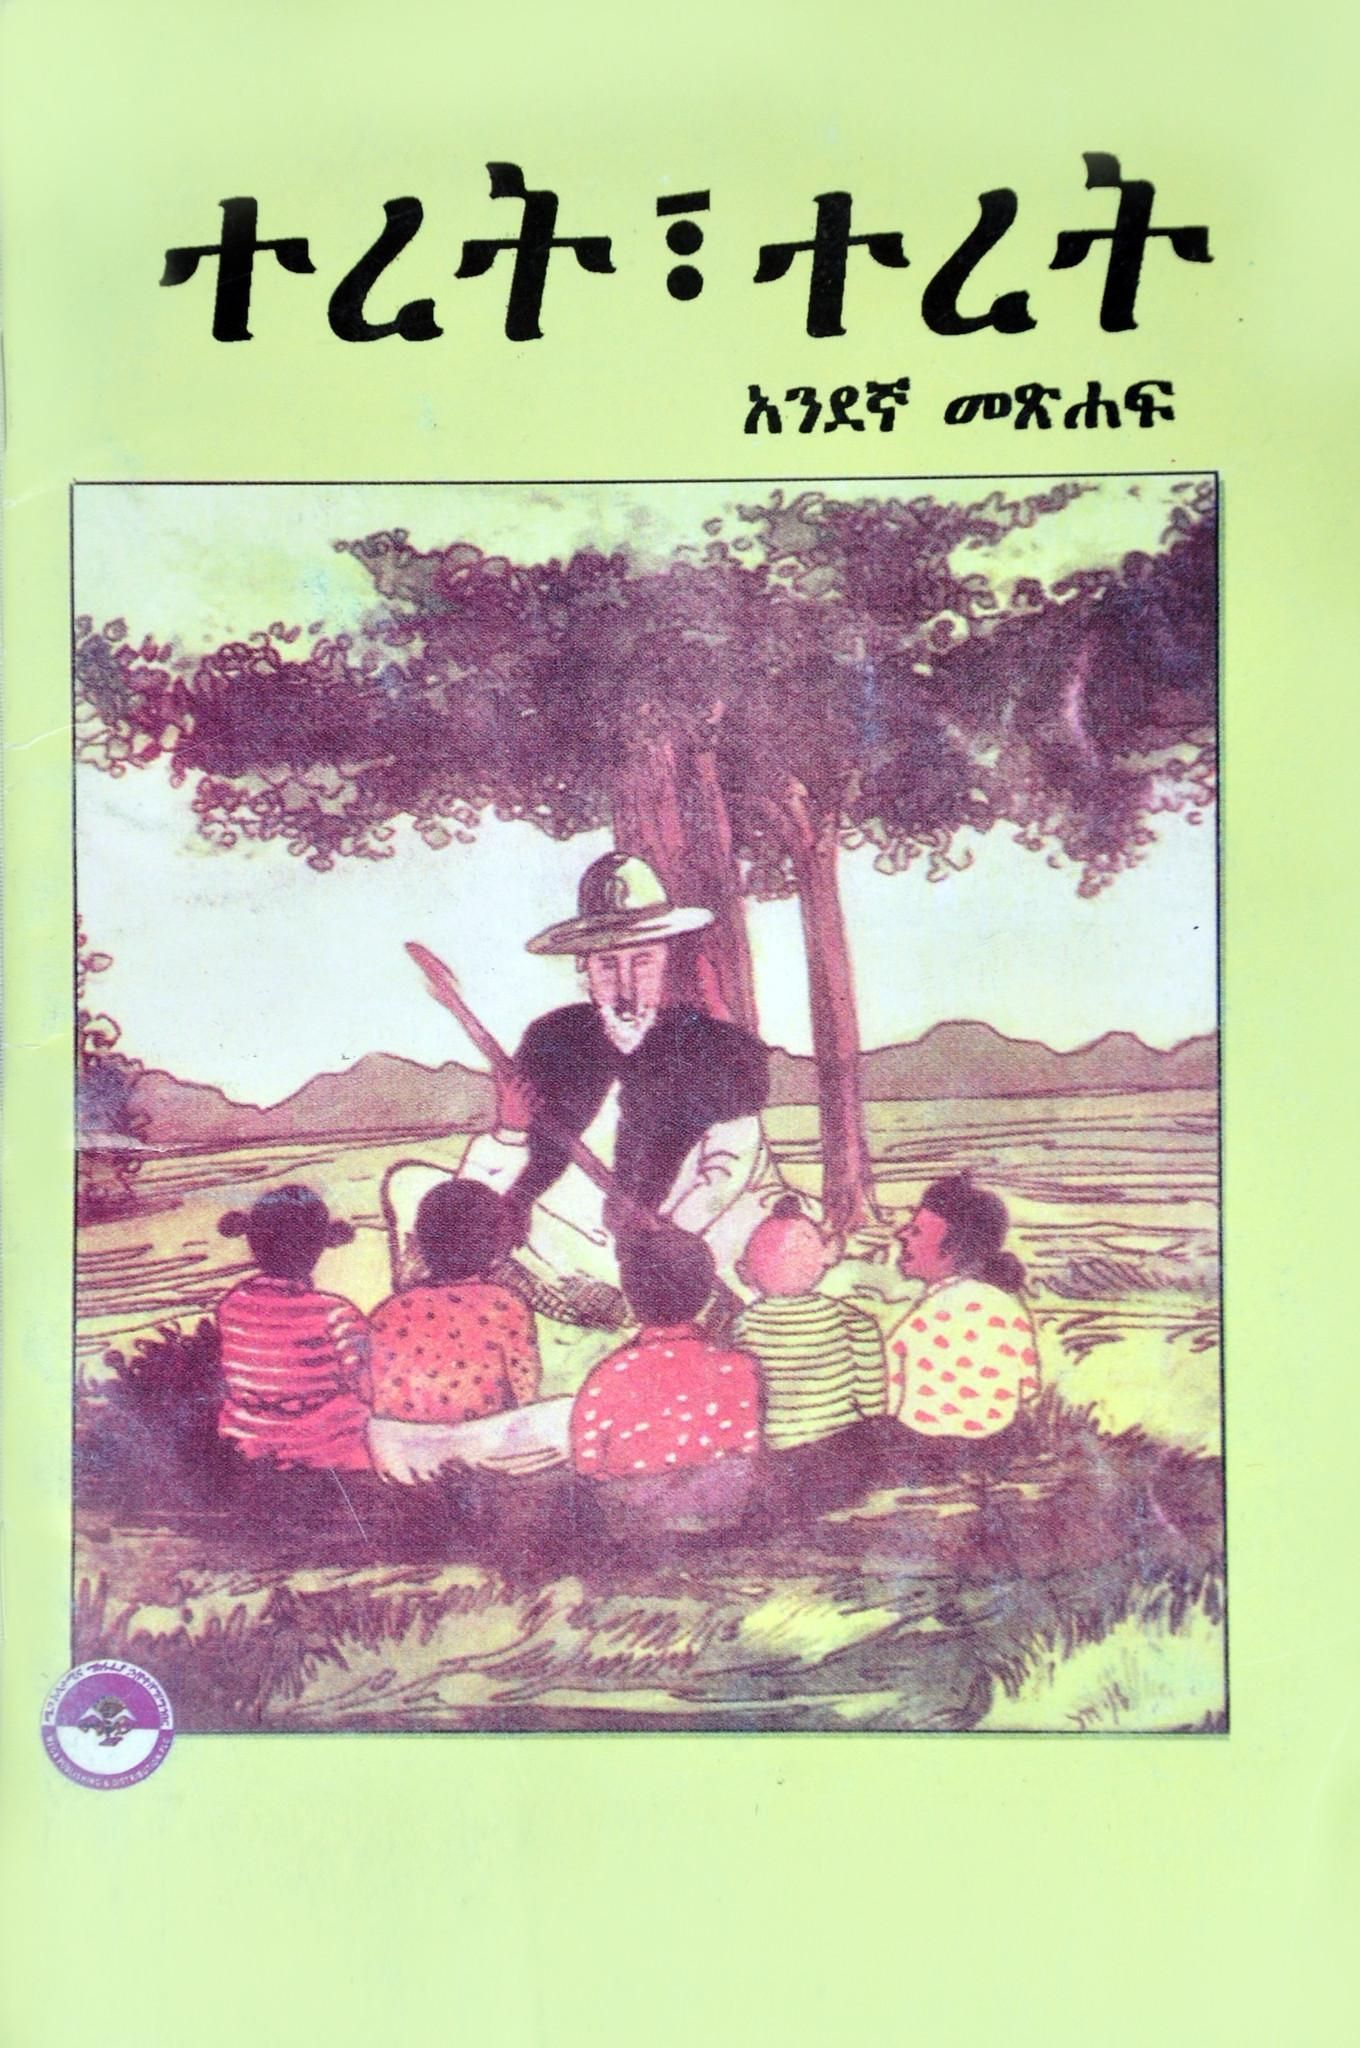 Amharic Children Story Book Teret Teret Learn Amharic